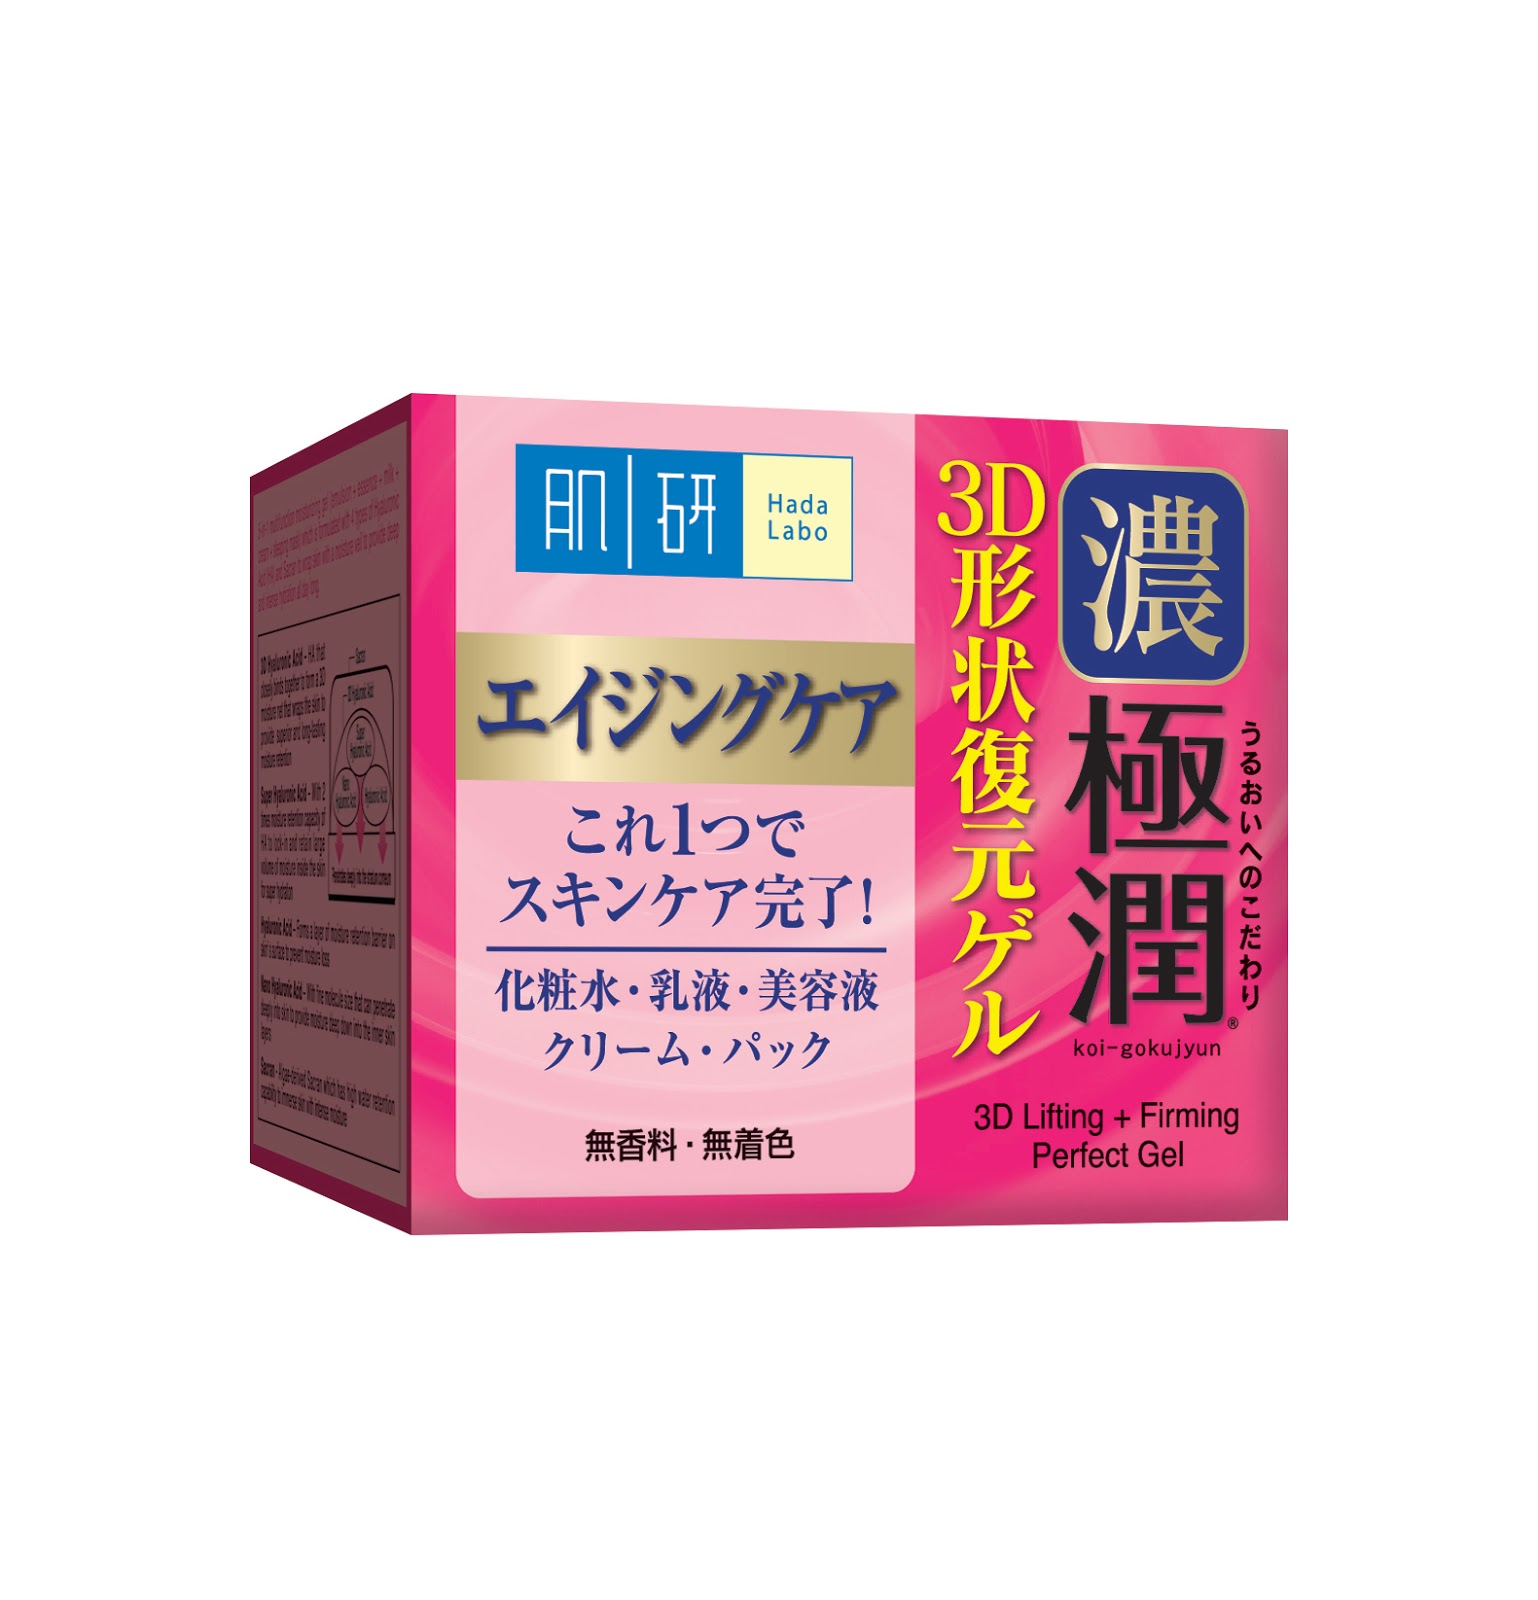 EVERGREEN LOVE: Hada Labo's New 3D Perfect Gel Is 5-in-1 ...